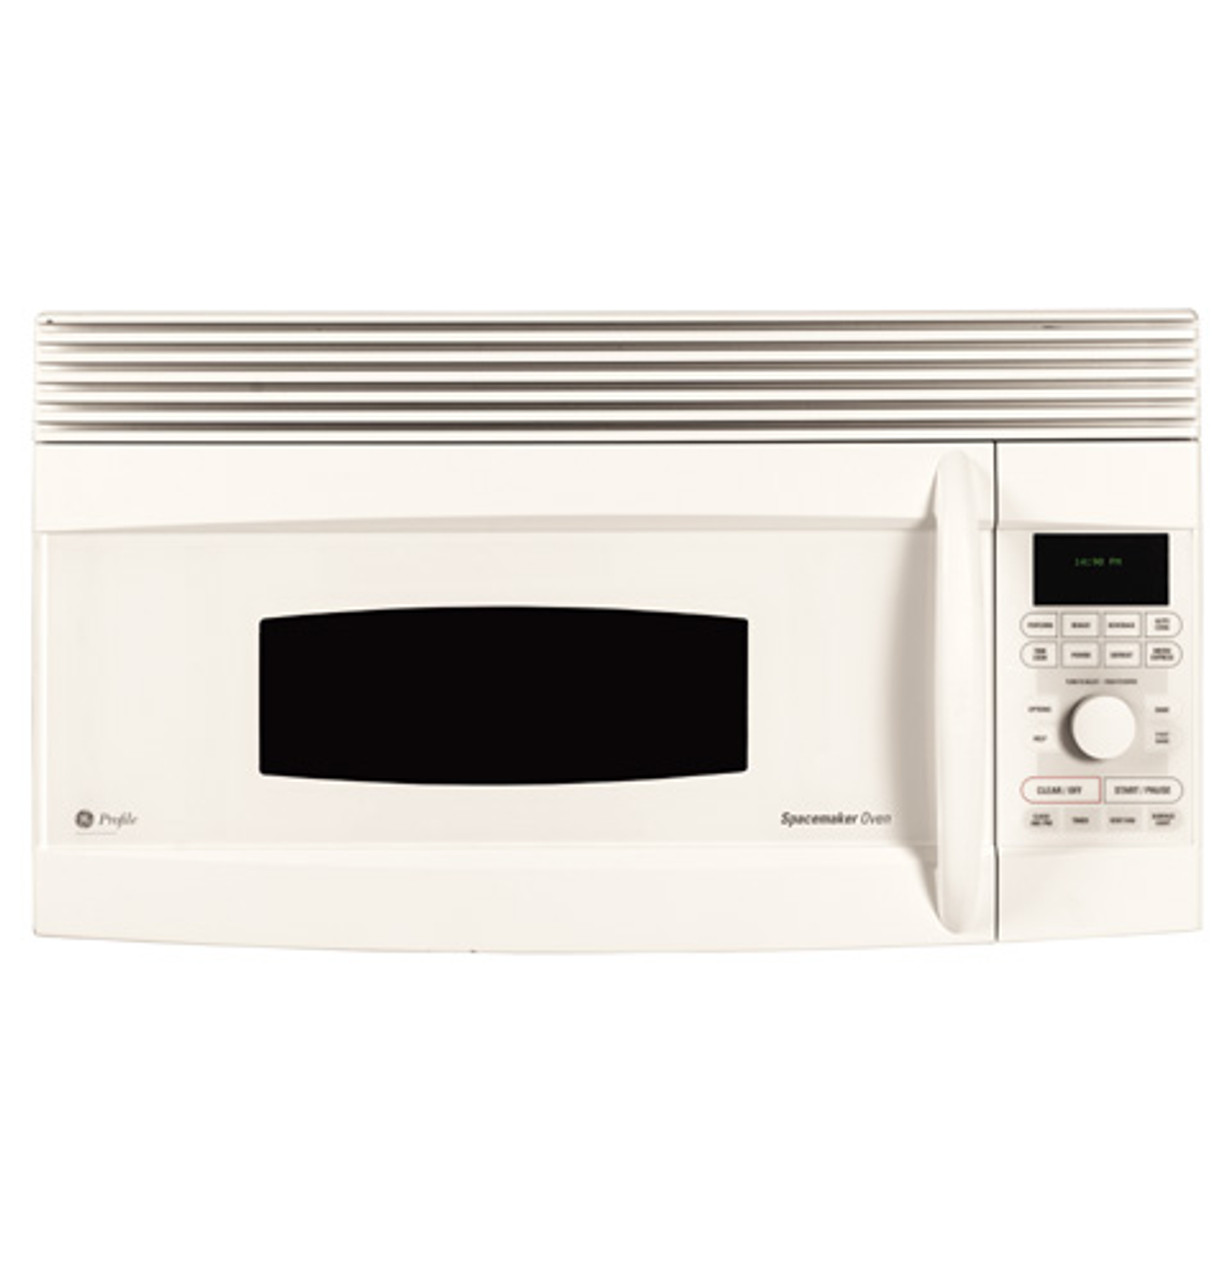 ge profile spacemaker convection microwave oven jvm1490ch